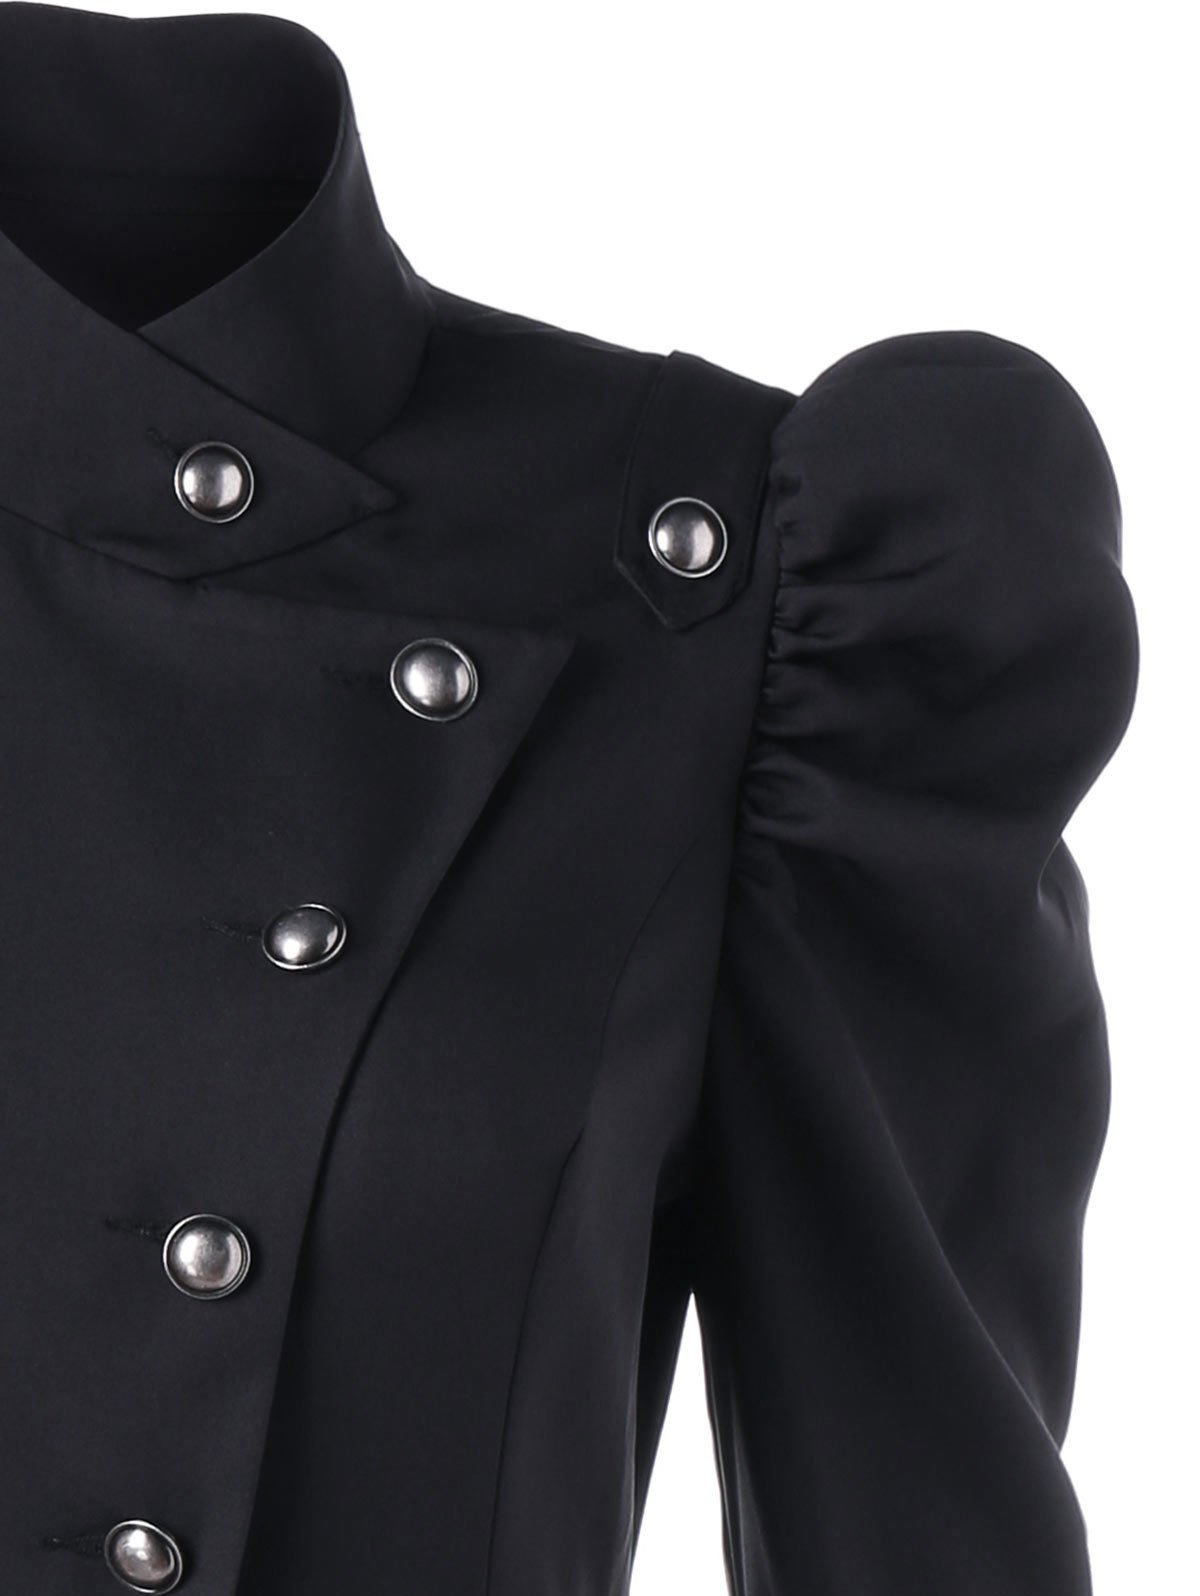 Beebeauty Gothic Vintage Womens Steampunk Victorian Swallow Tail Long Trench Coat Jacket 5